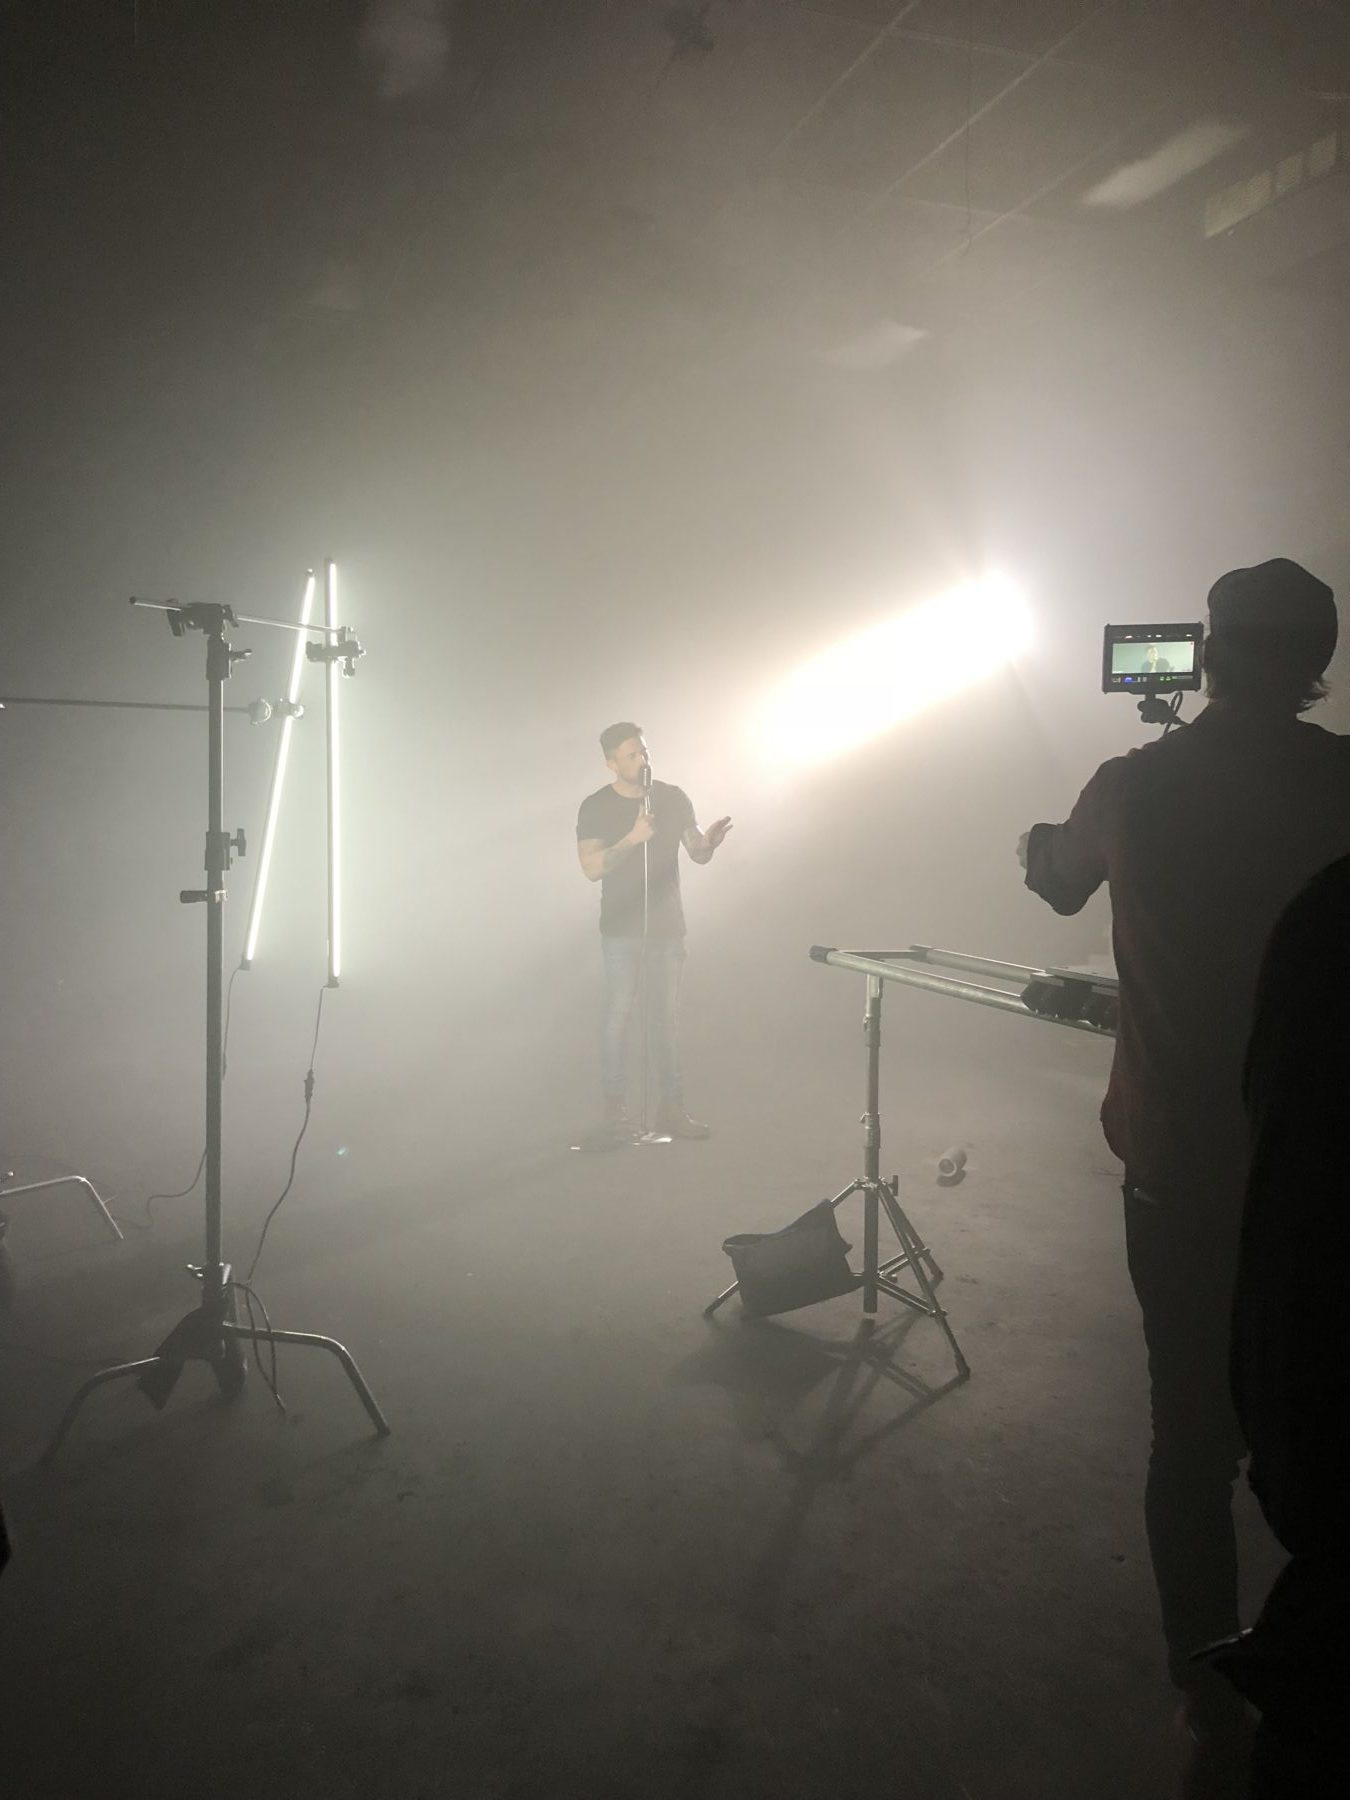 Nashville Video Production Equipment Rentals